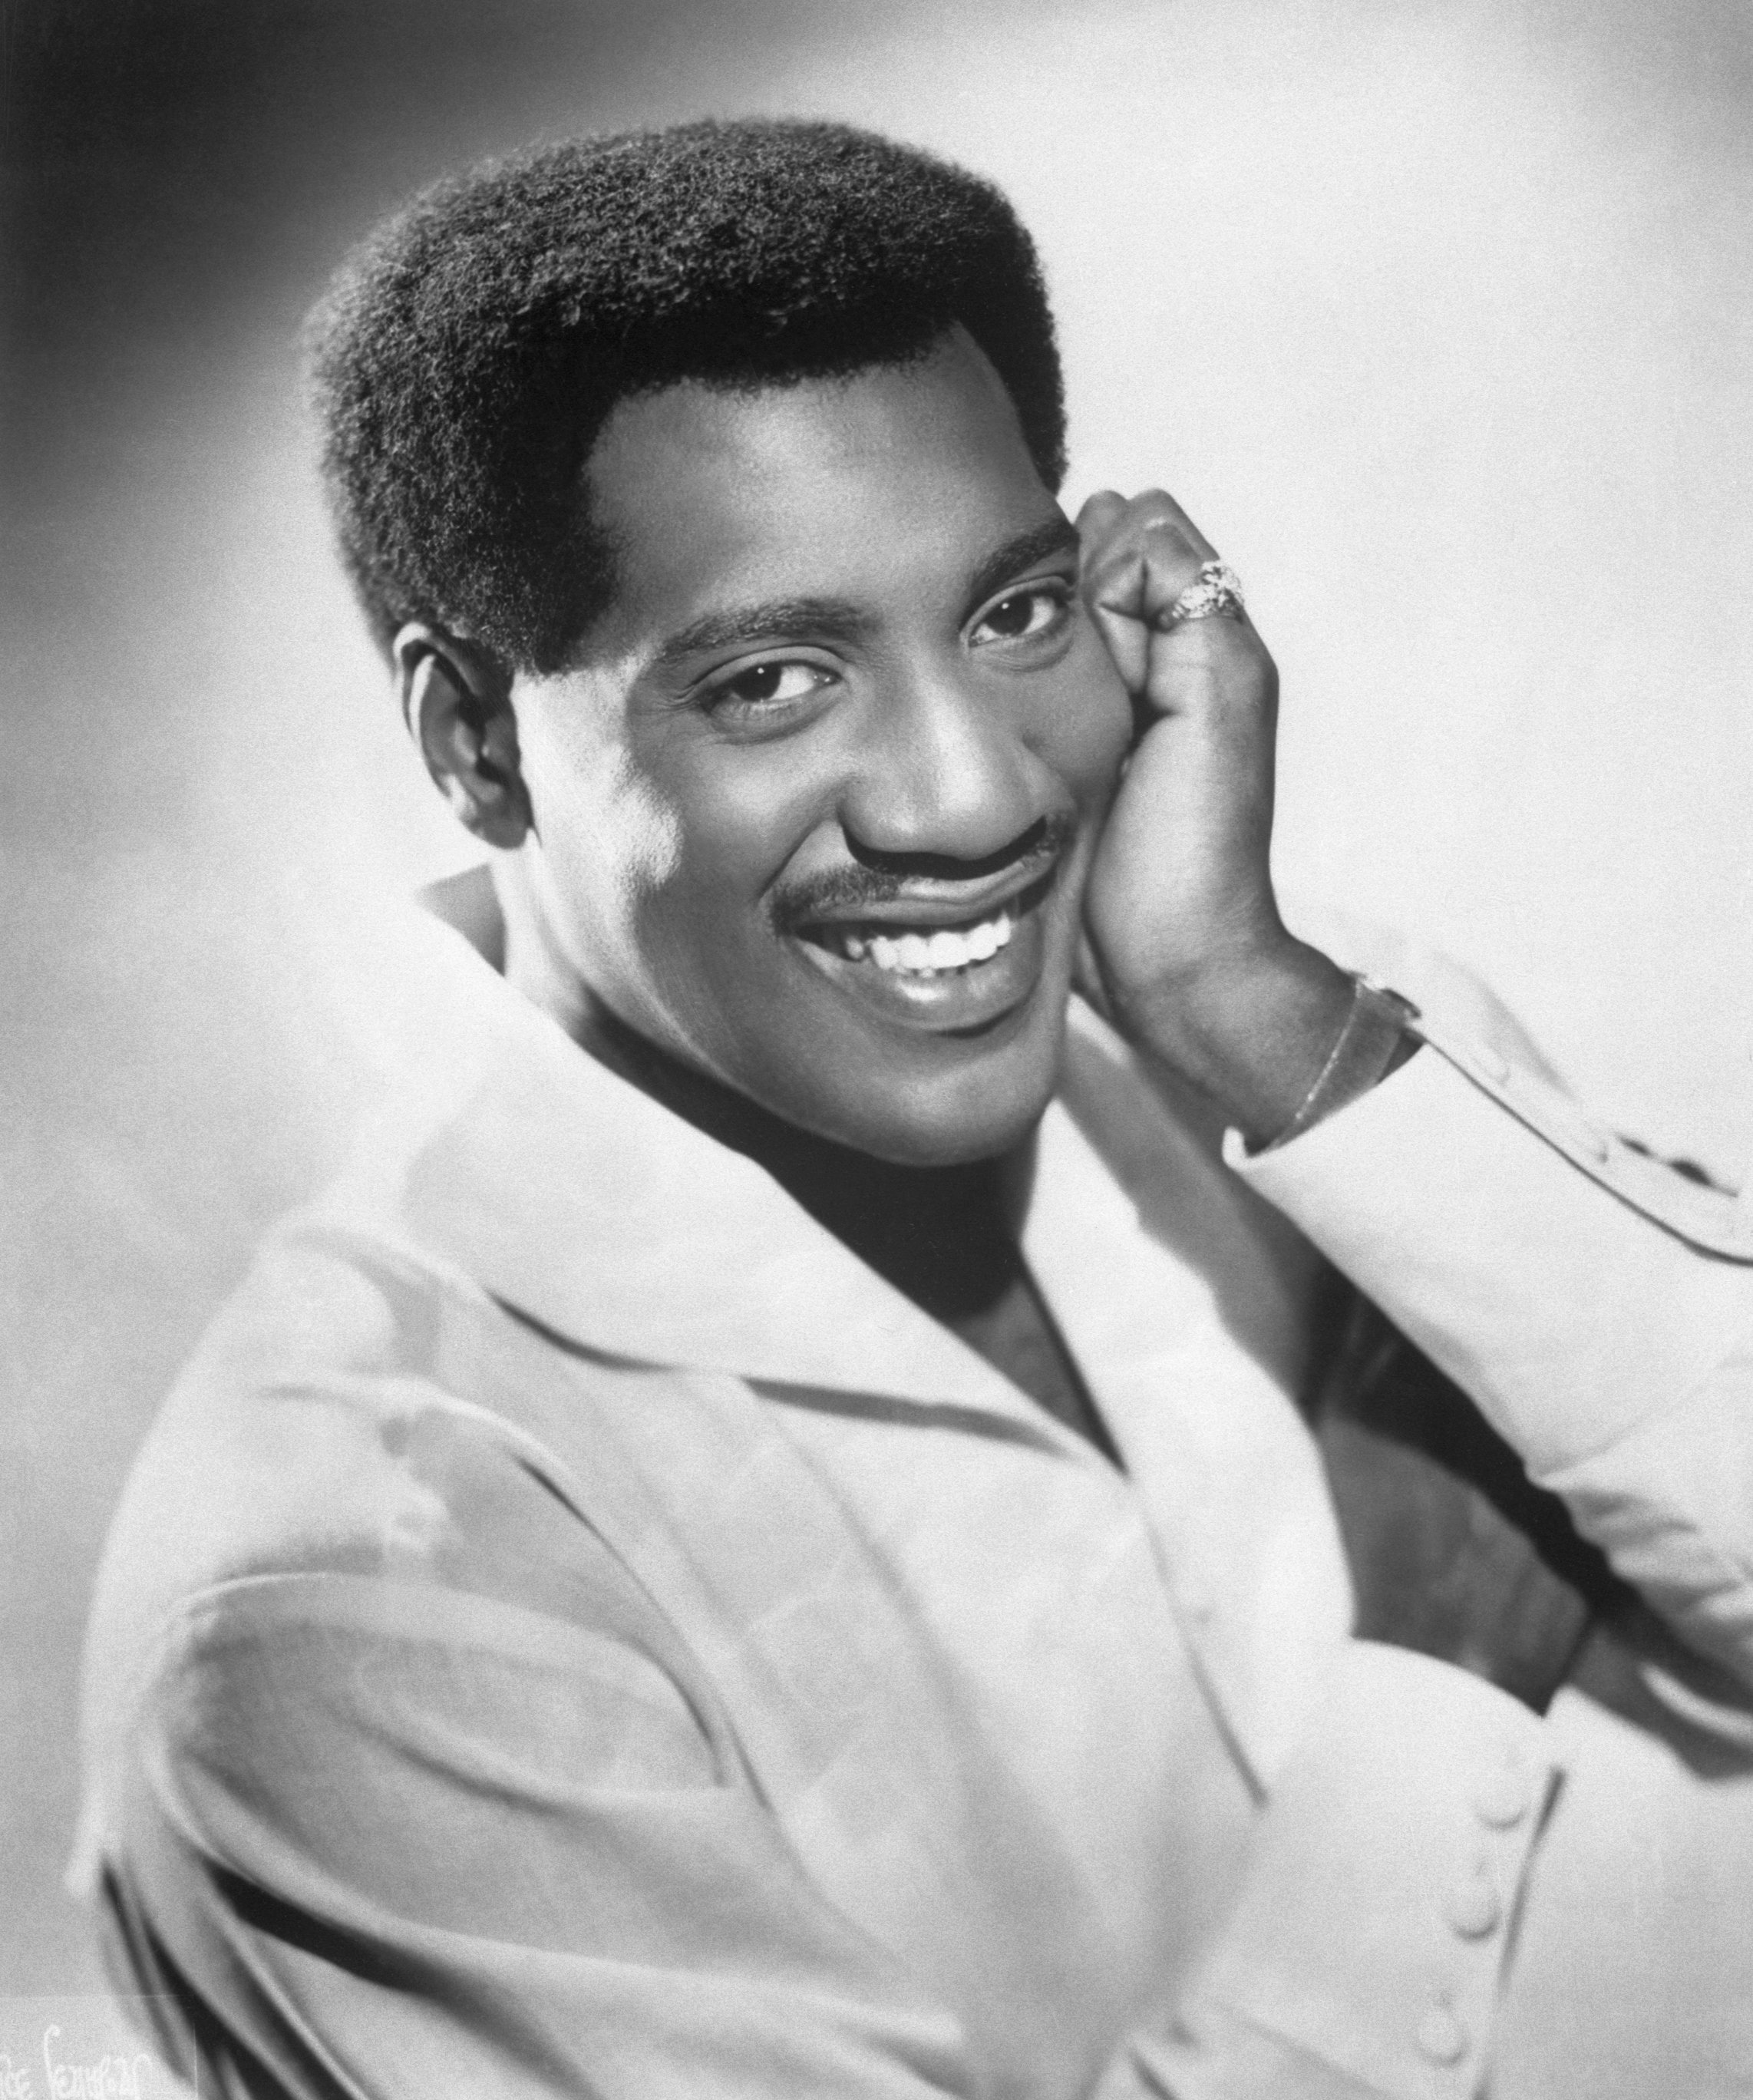 Otis Redding poses for a publicity handout in the 1960s | Photo: Getty Images